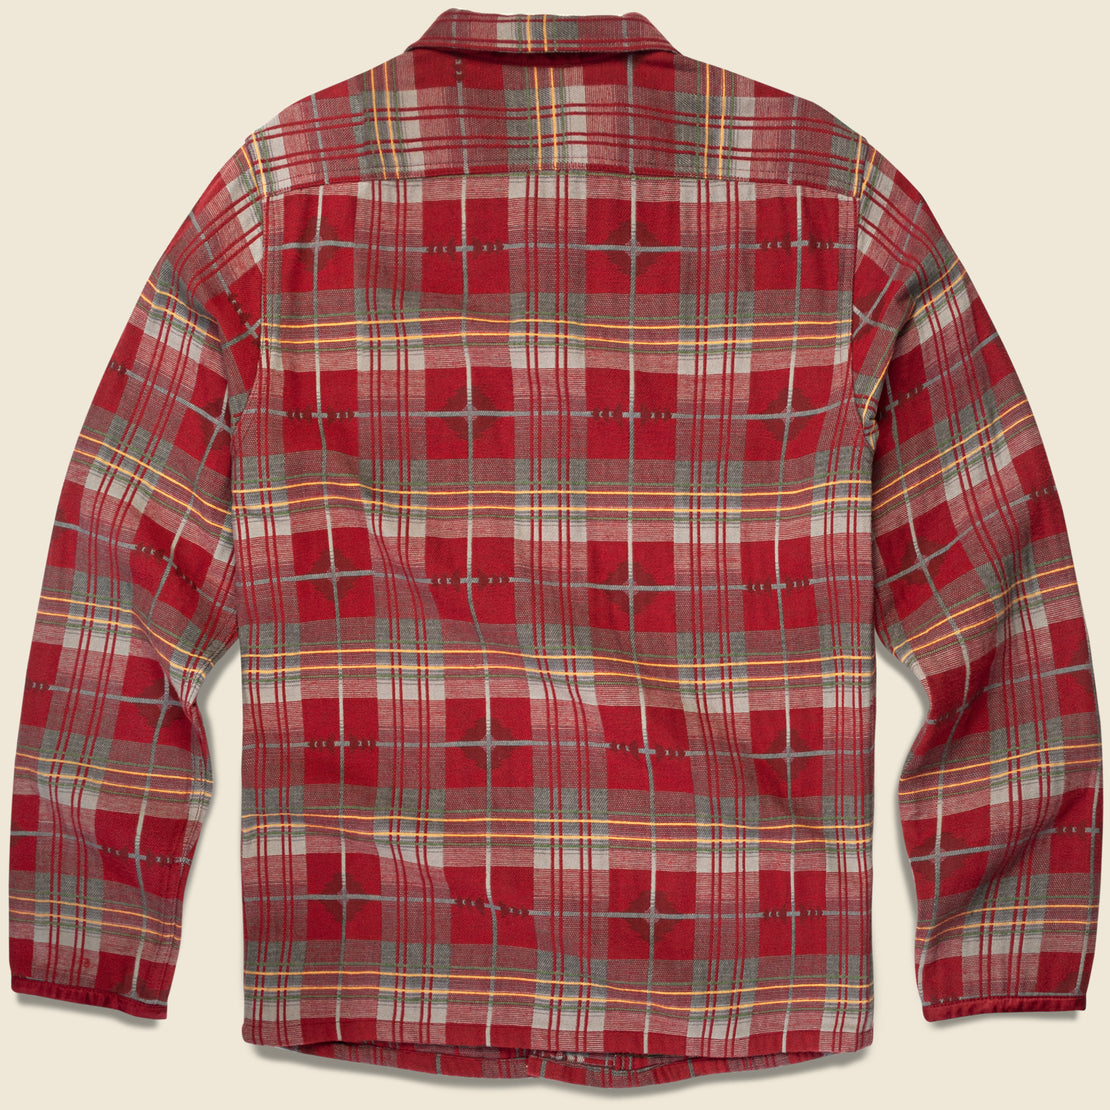 Jacquard Workshirt - Red